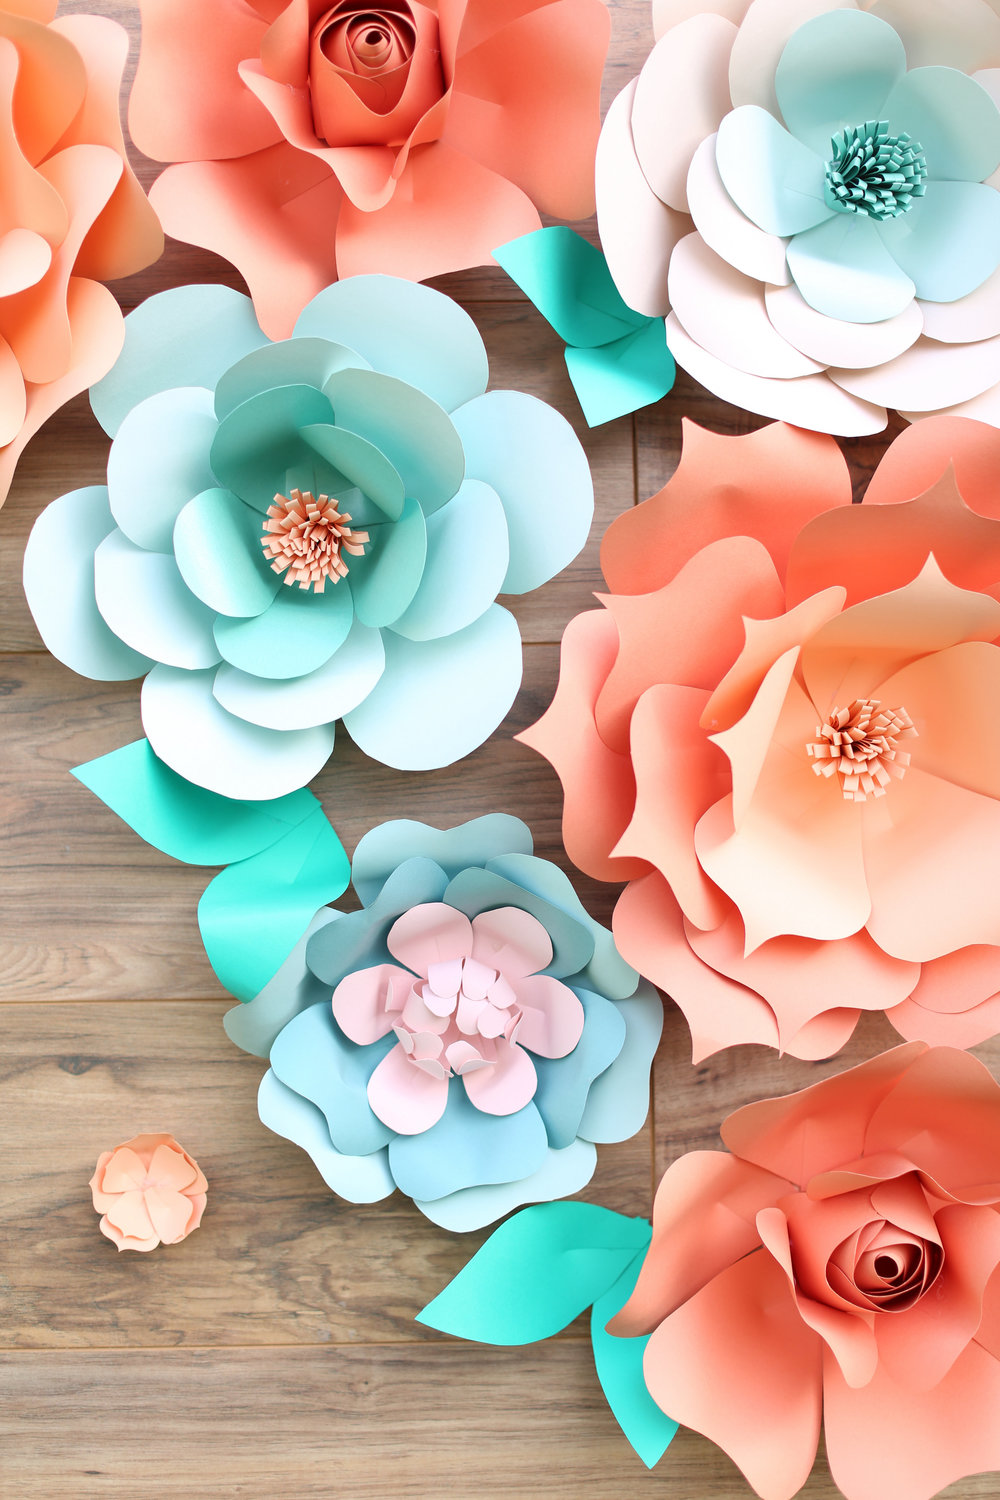 rustic giant paper flower backdrop_rustic wood backdrop_ pallette backdrop_peach and teal giant paper flower backdrop_ peach wedding dessert decor_ peach and teal wedding decor ideas_ unique rustic decor 12.jpg